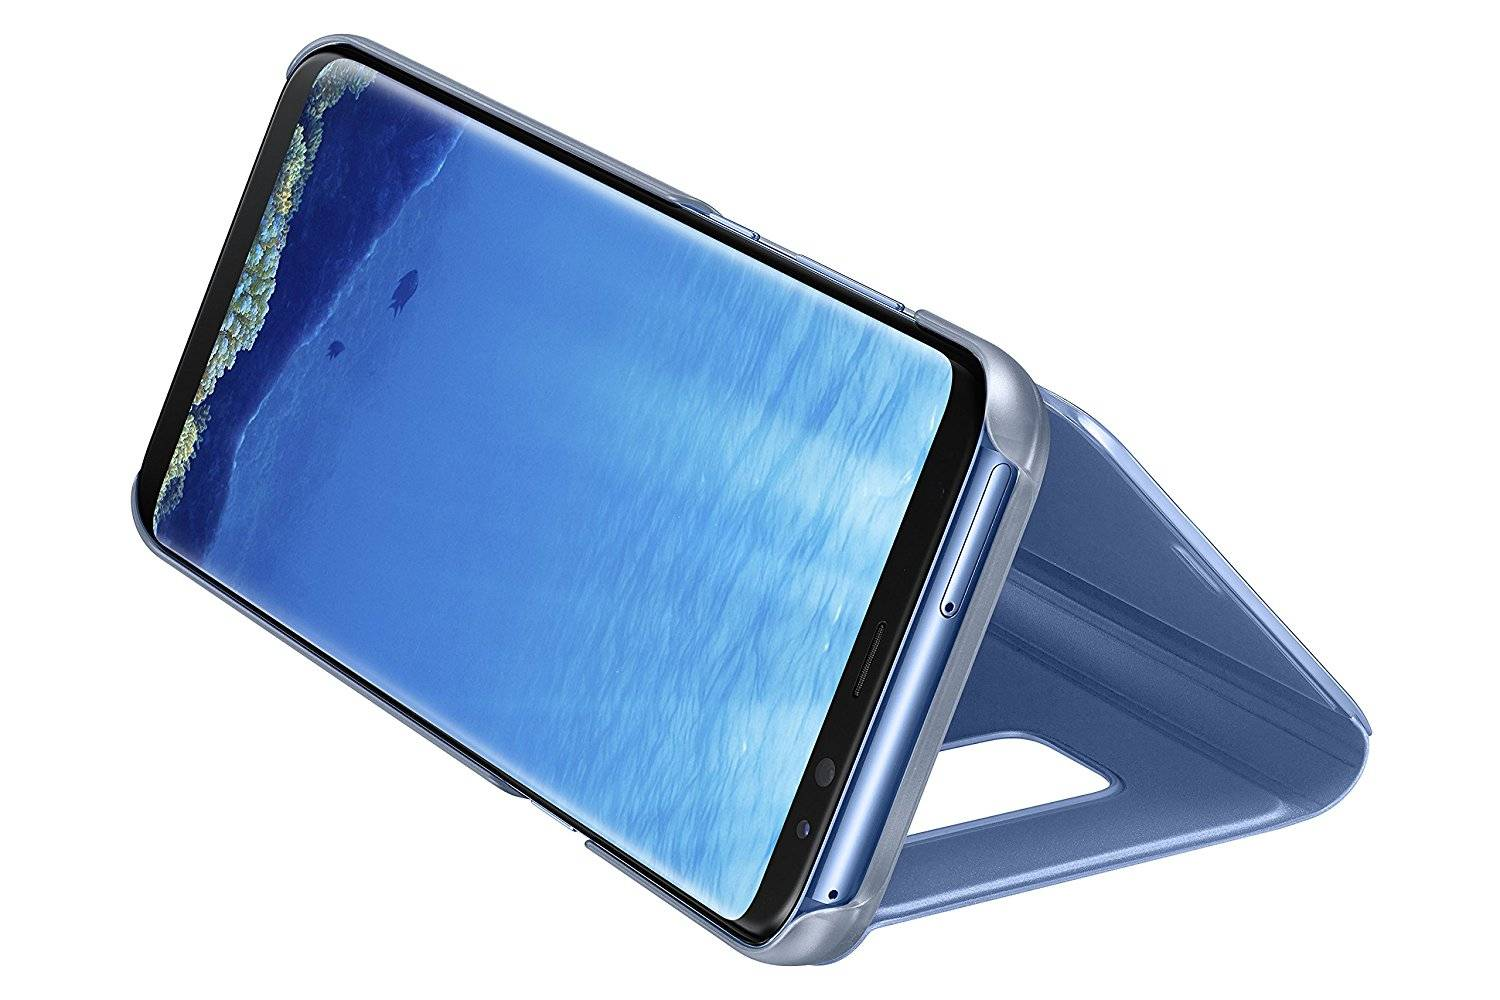 Official Samsung Galaxy S8/S8+ Accessories now on Amazon pre